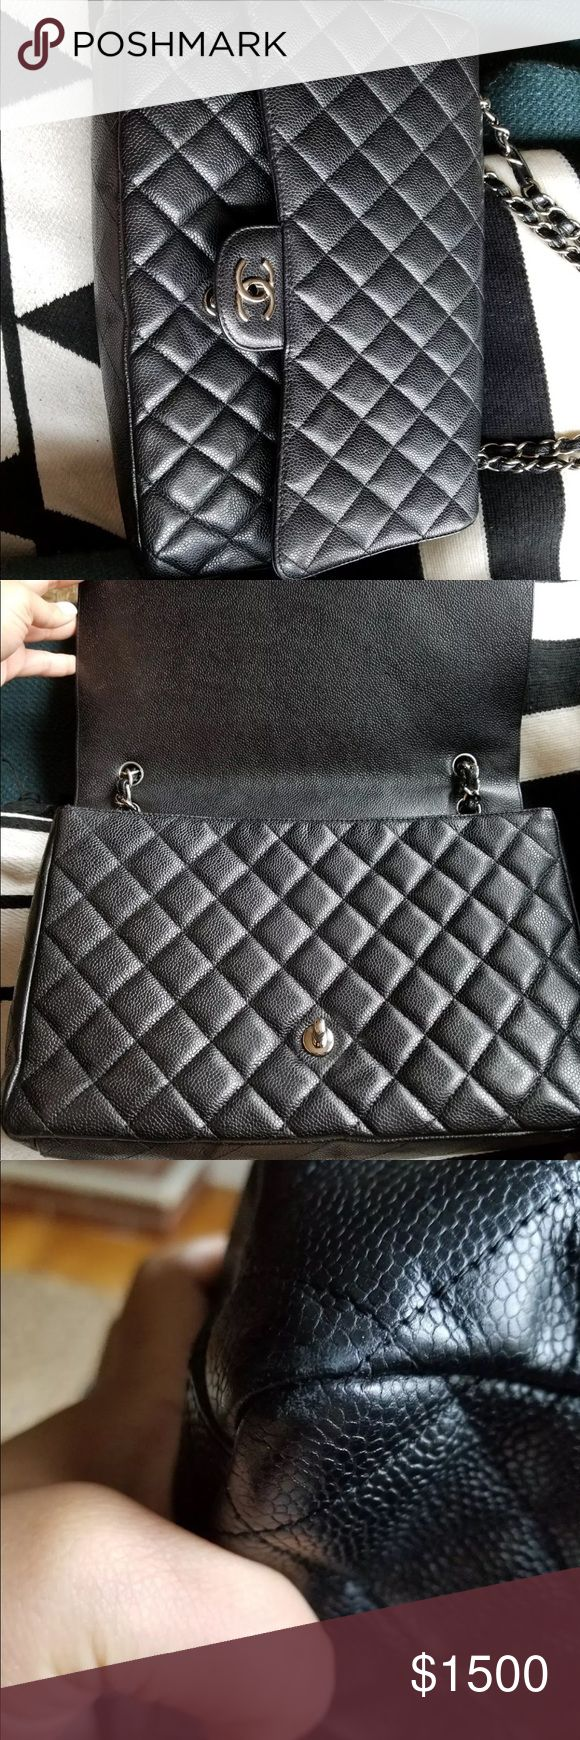 Chanel Jumbo Maxi Black Caviar Flap Bag Chanel Jumbo Maxi Black Caviar Flap Bag, small wear on the corner. Spilled lash glue on the inside pocket reason for low price. It's authentic and posh will confirm before shipping it out to you. Please use offer buttons for any negotiations. CHANEL Bags Shoulder Bags